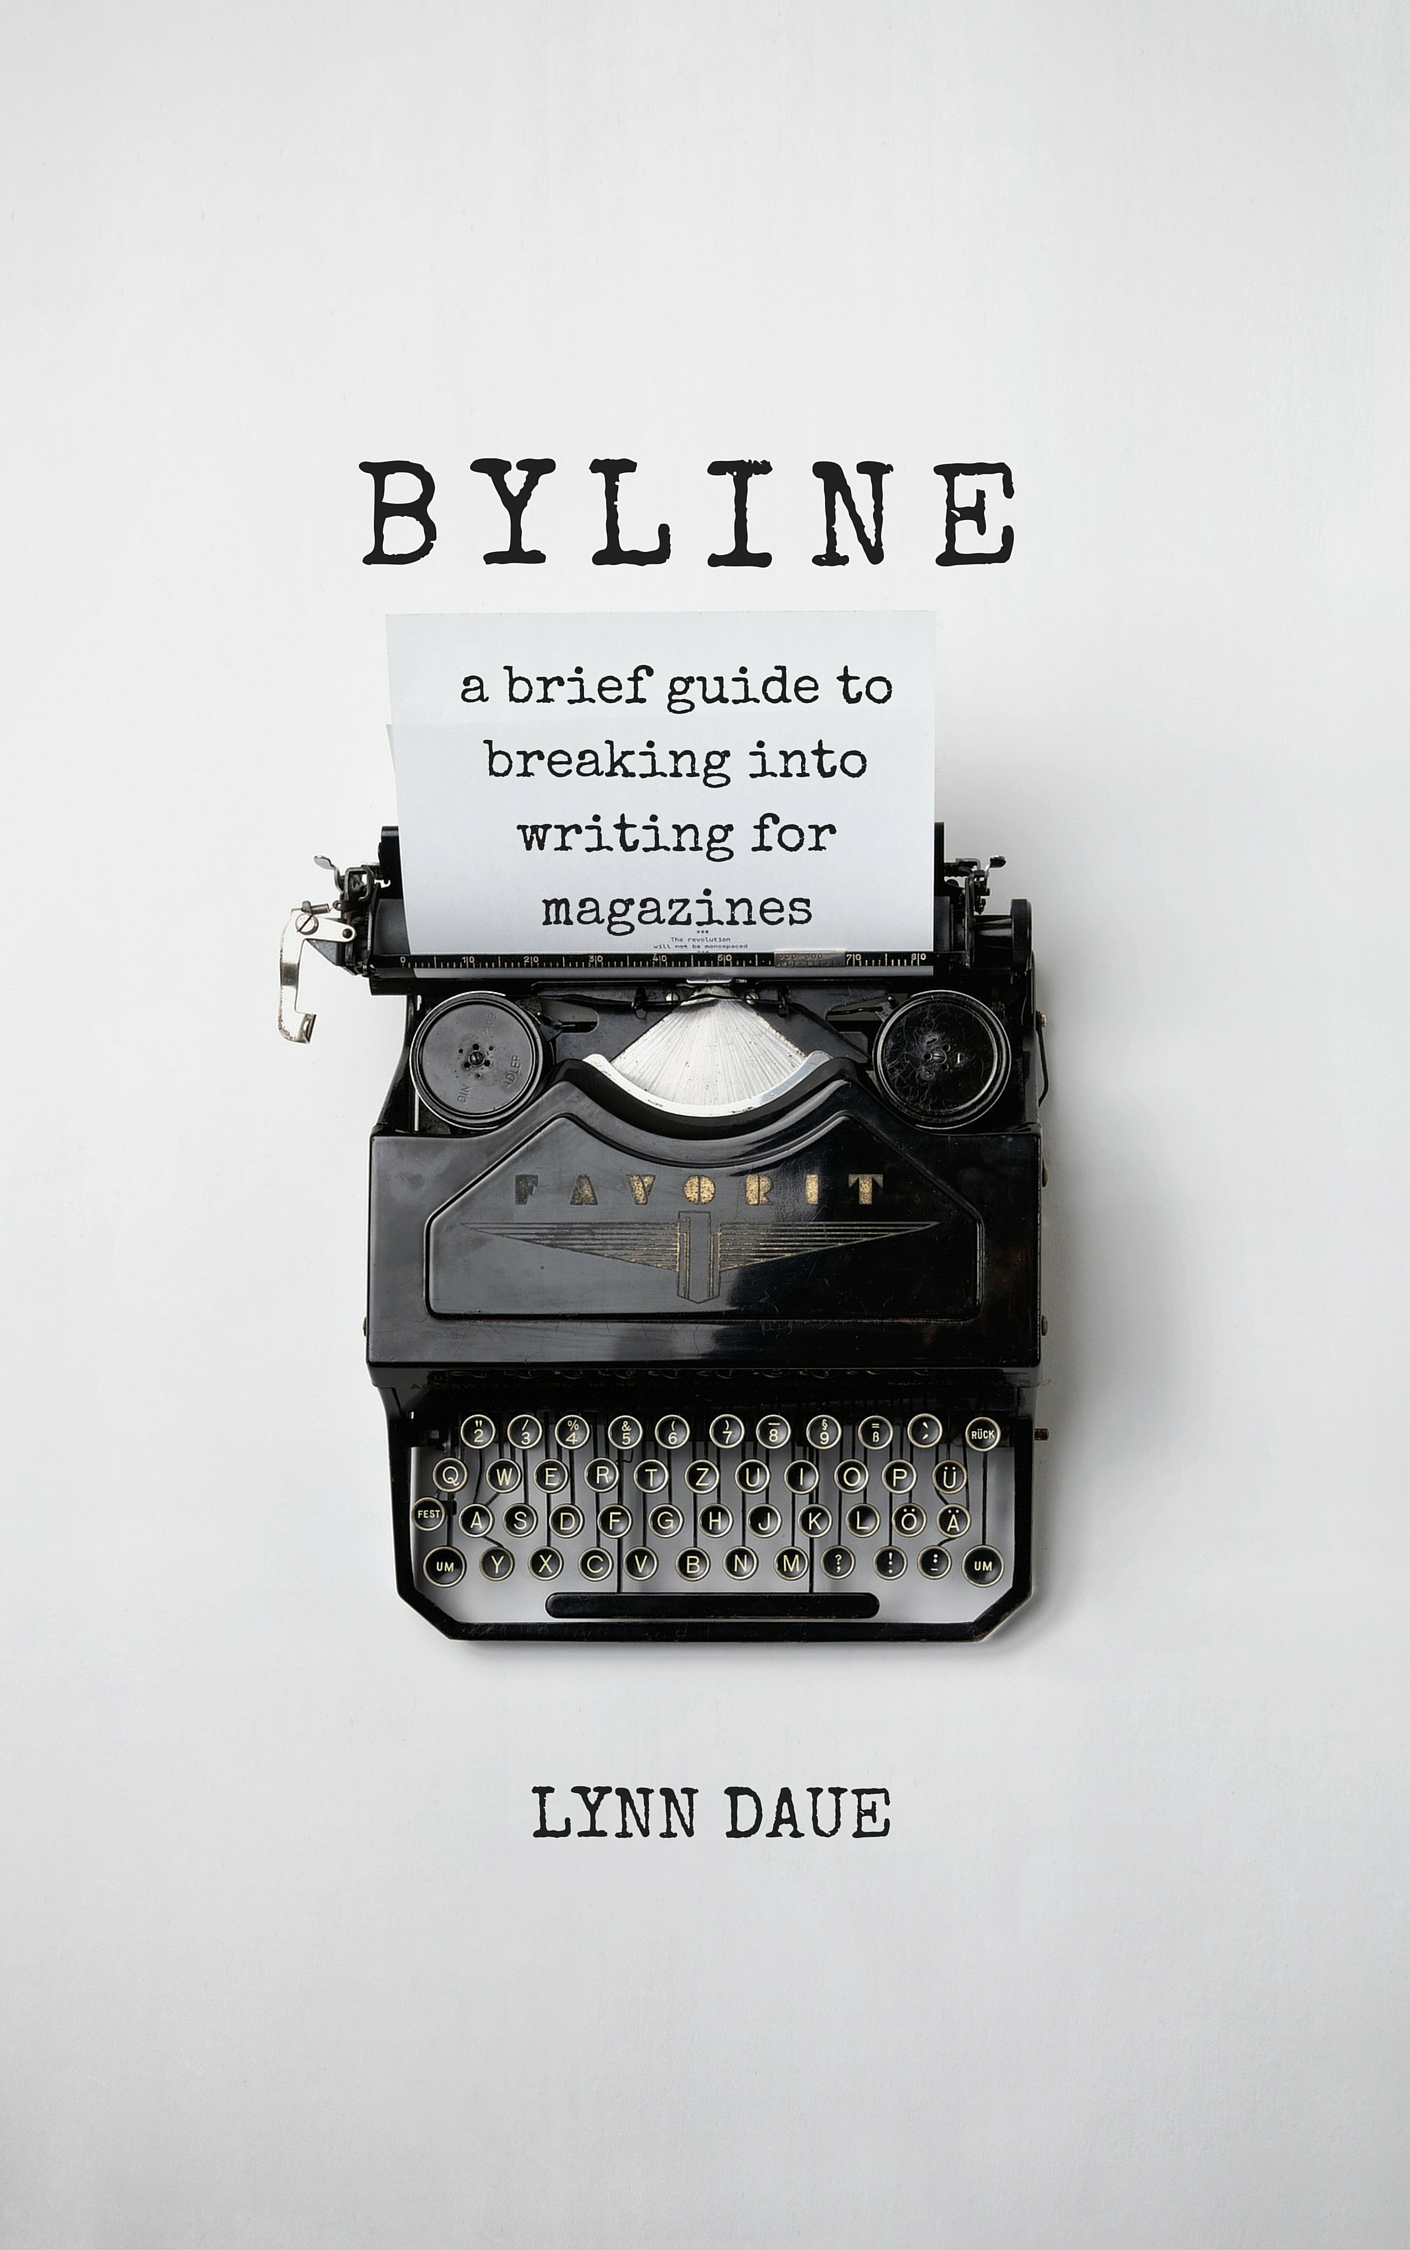 BYLINE: A Brief Guide to Breaking Into Writing for Magazines